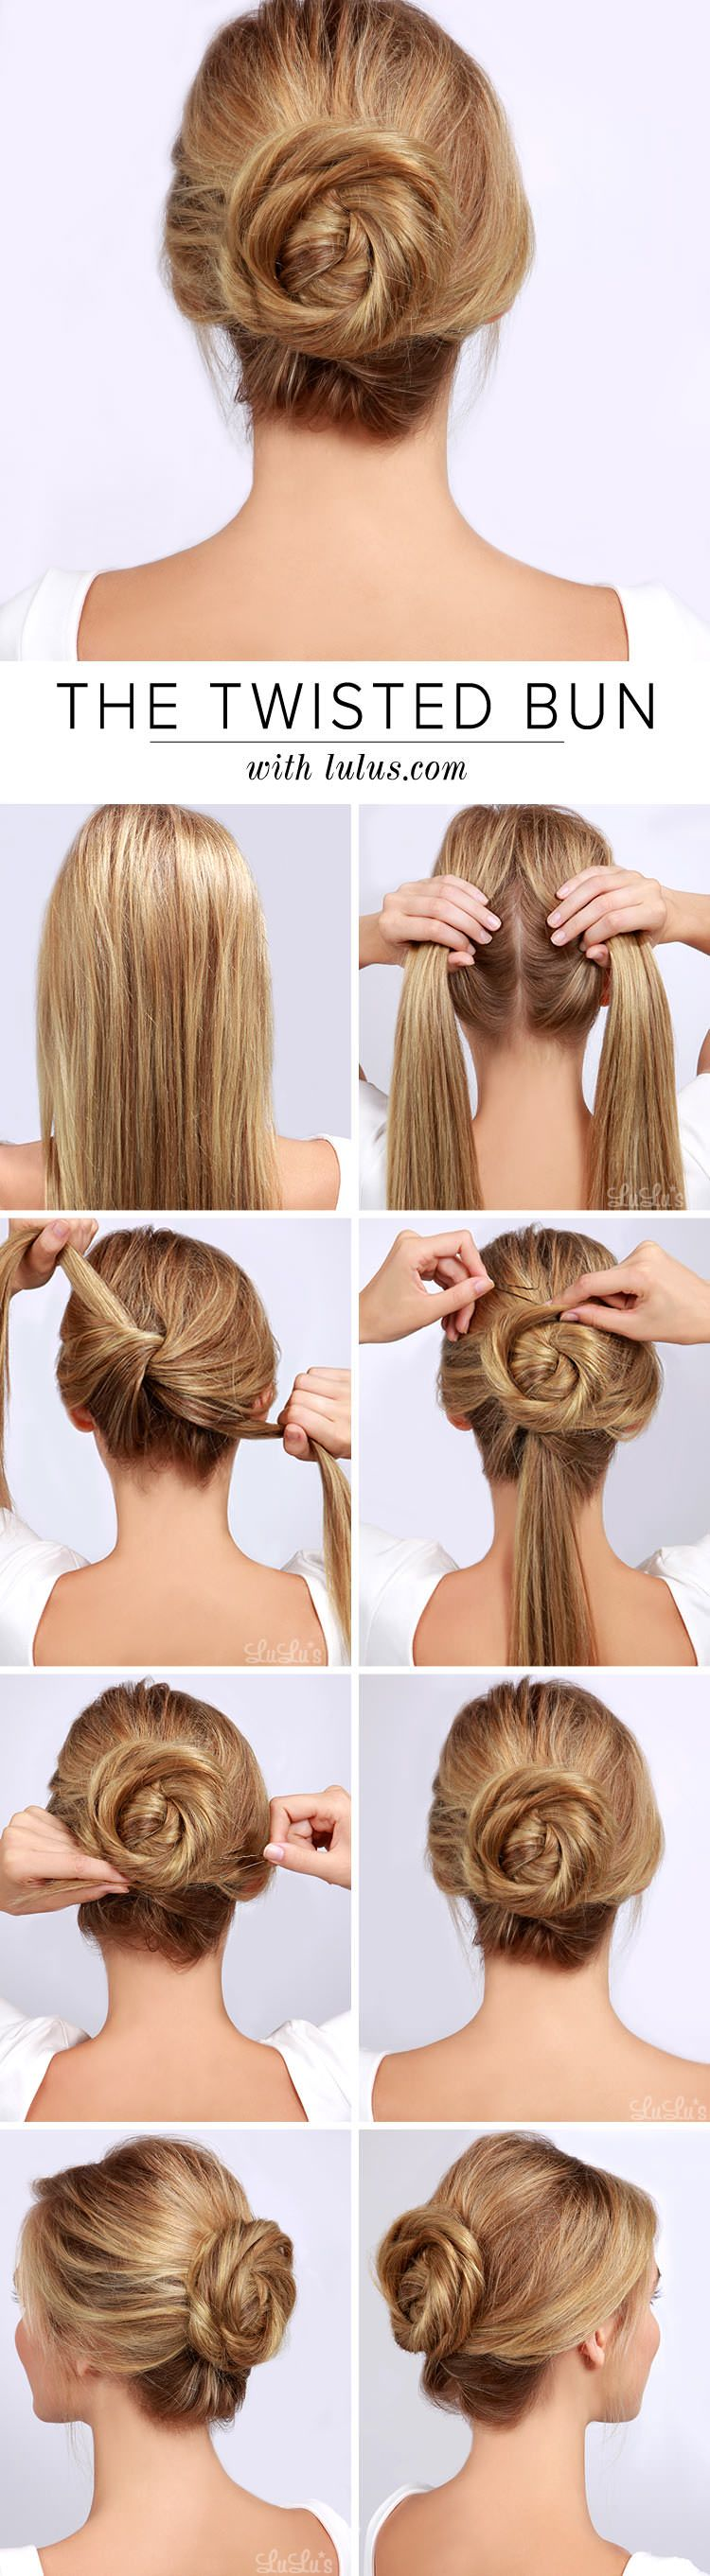 The twisted bun looks like cute and simplemight havr to do this